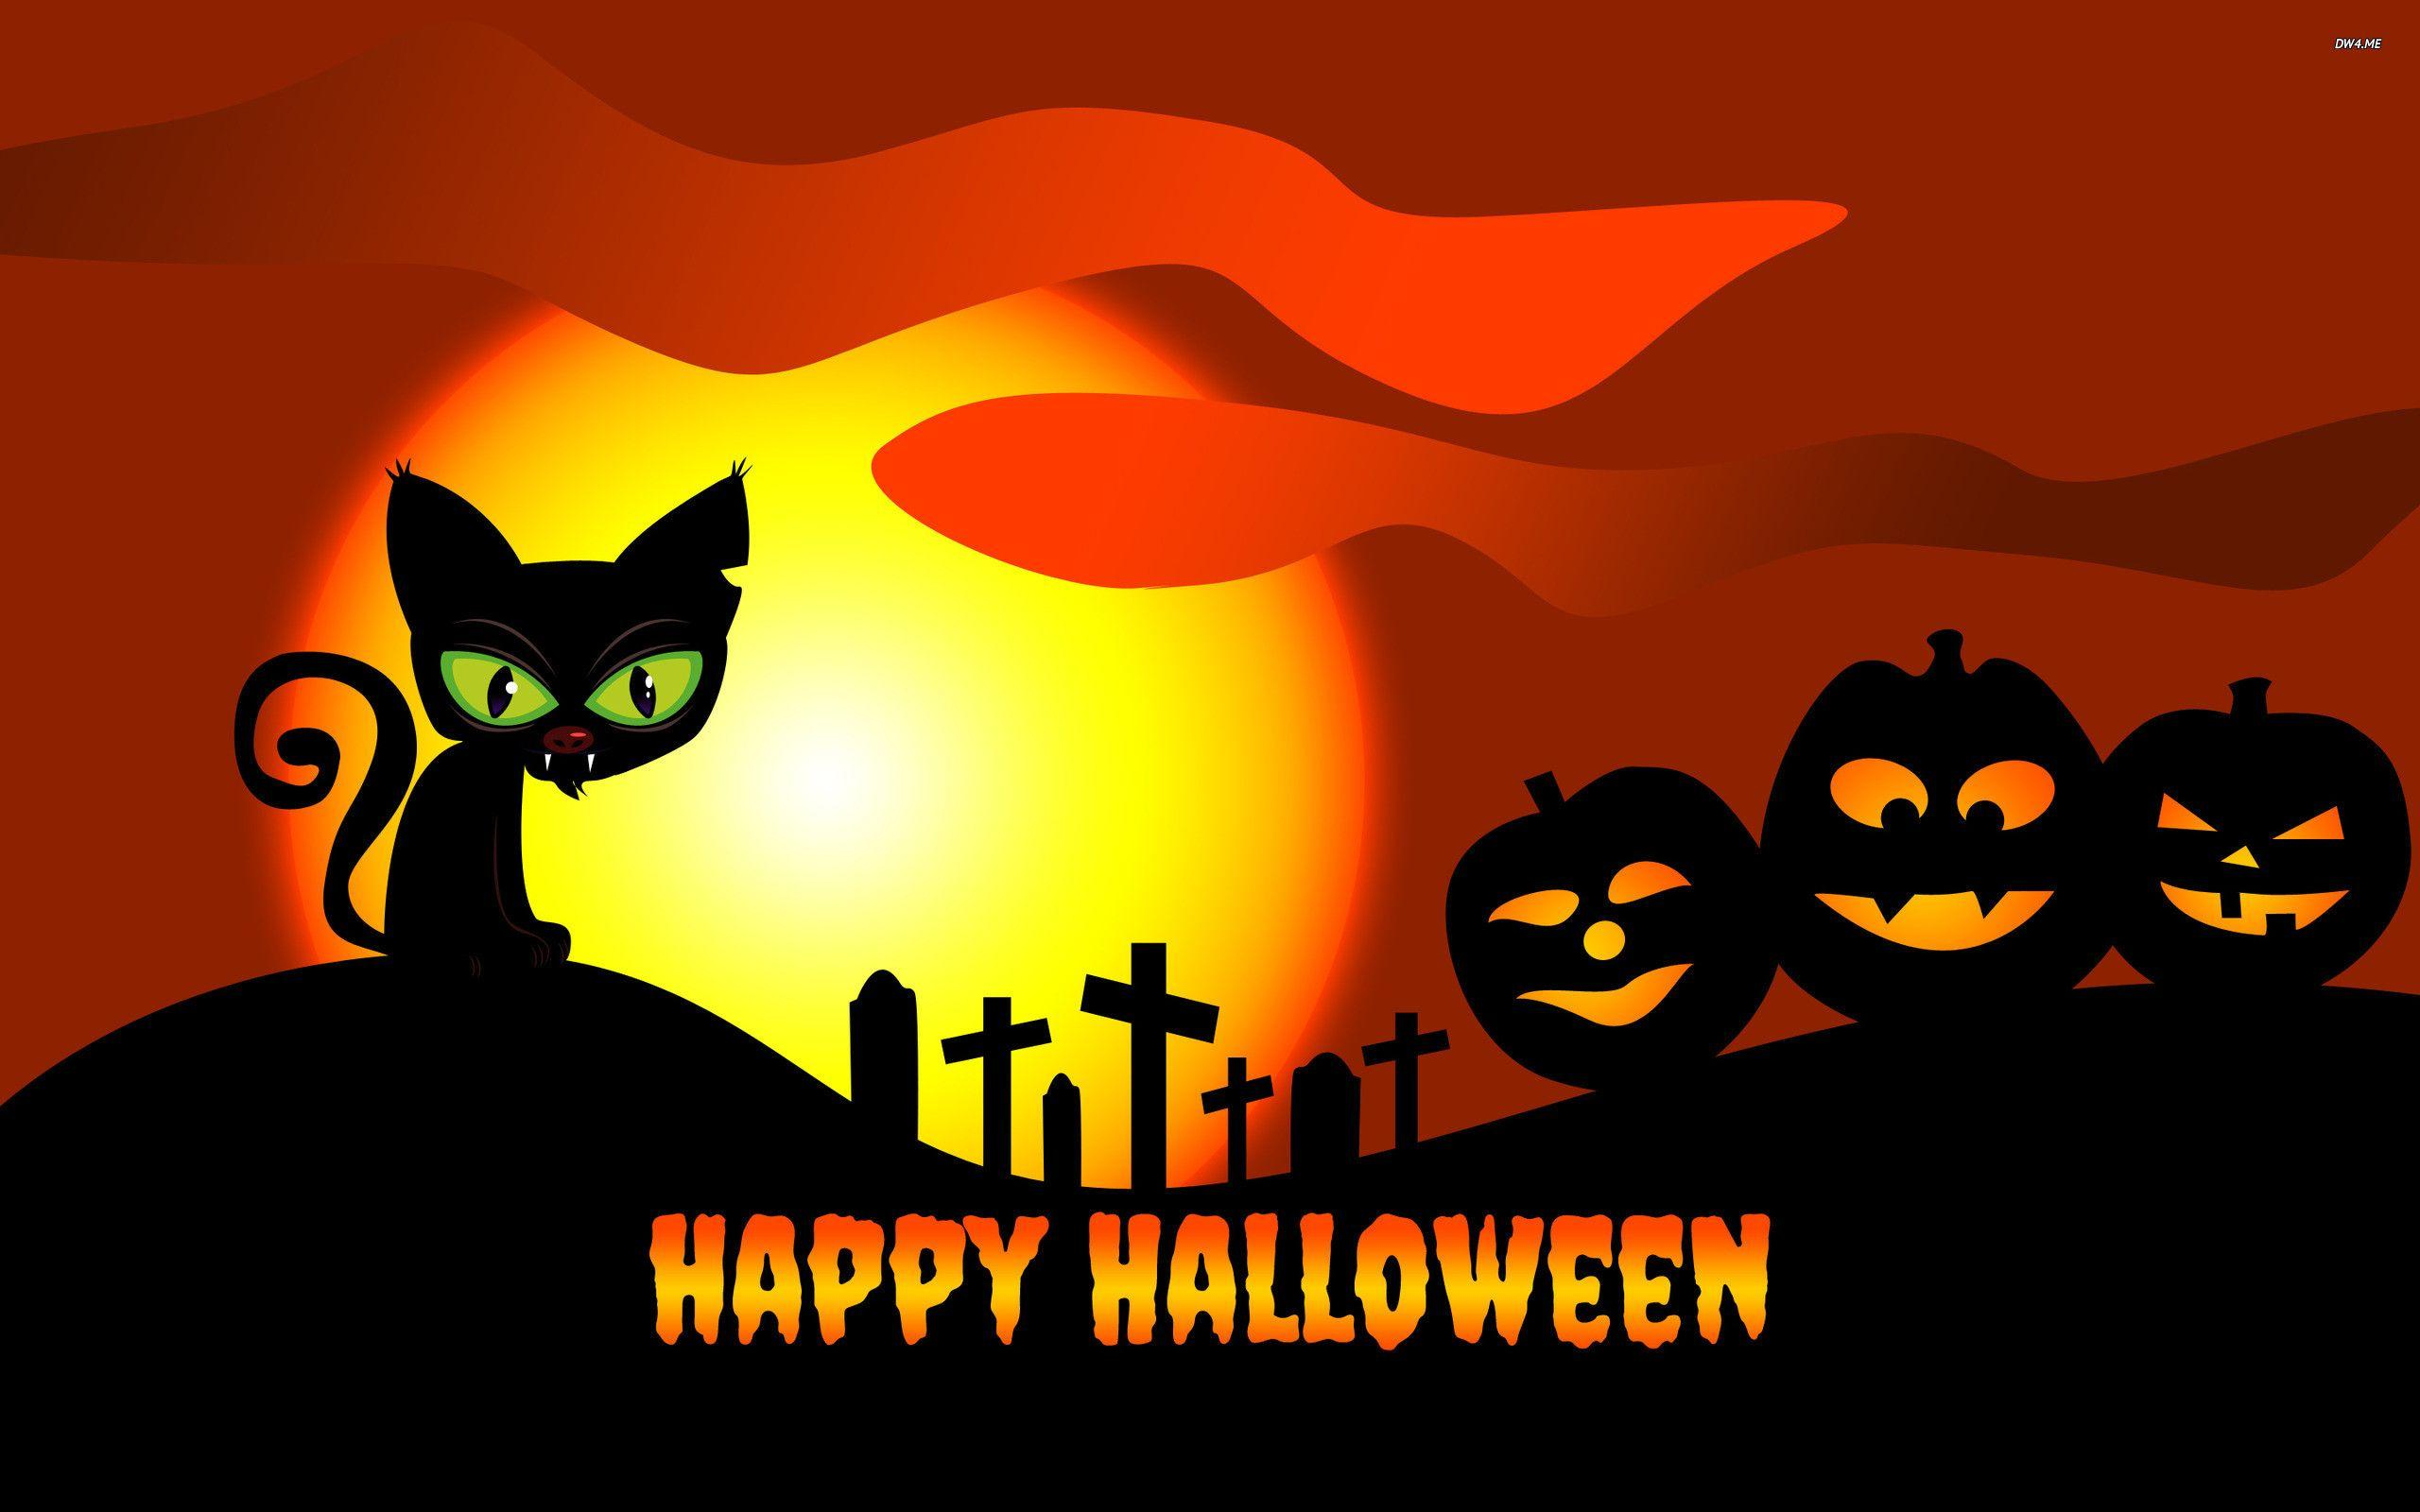 Happy Halloween 2017* Quotes, Sayings, Images, Pics U0026 HD Wallpaper .